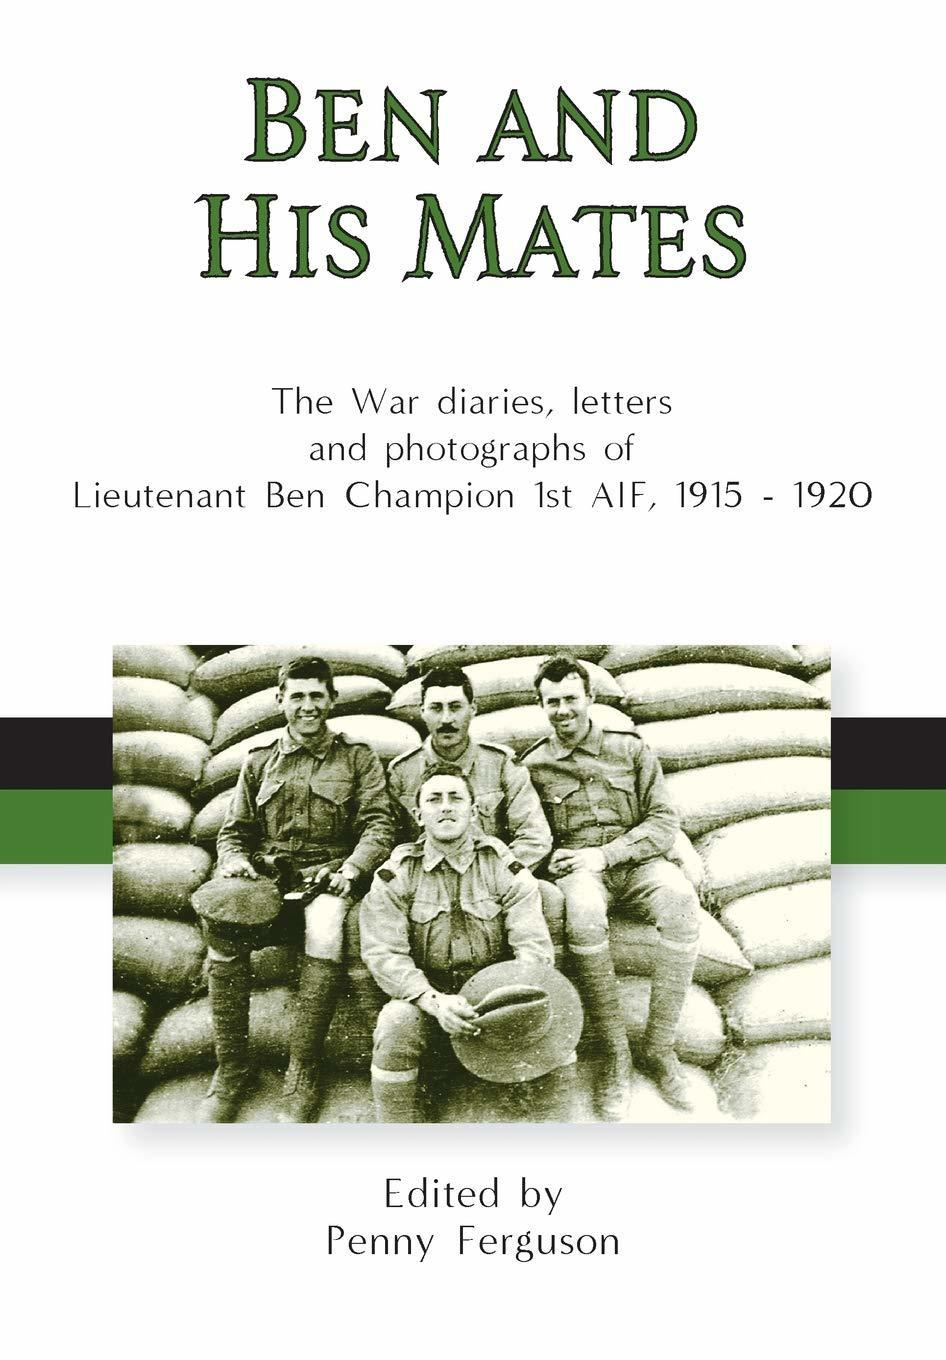 Ben and His Mates - The War Diaries, Letters and Photographs of Lieutenant Ben Champsion 1st AIF, 1915 - 1920